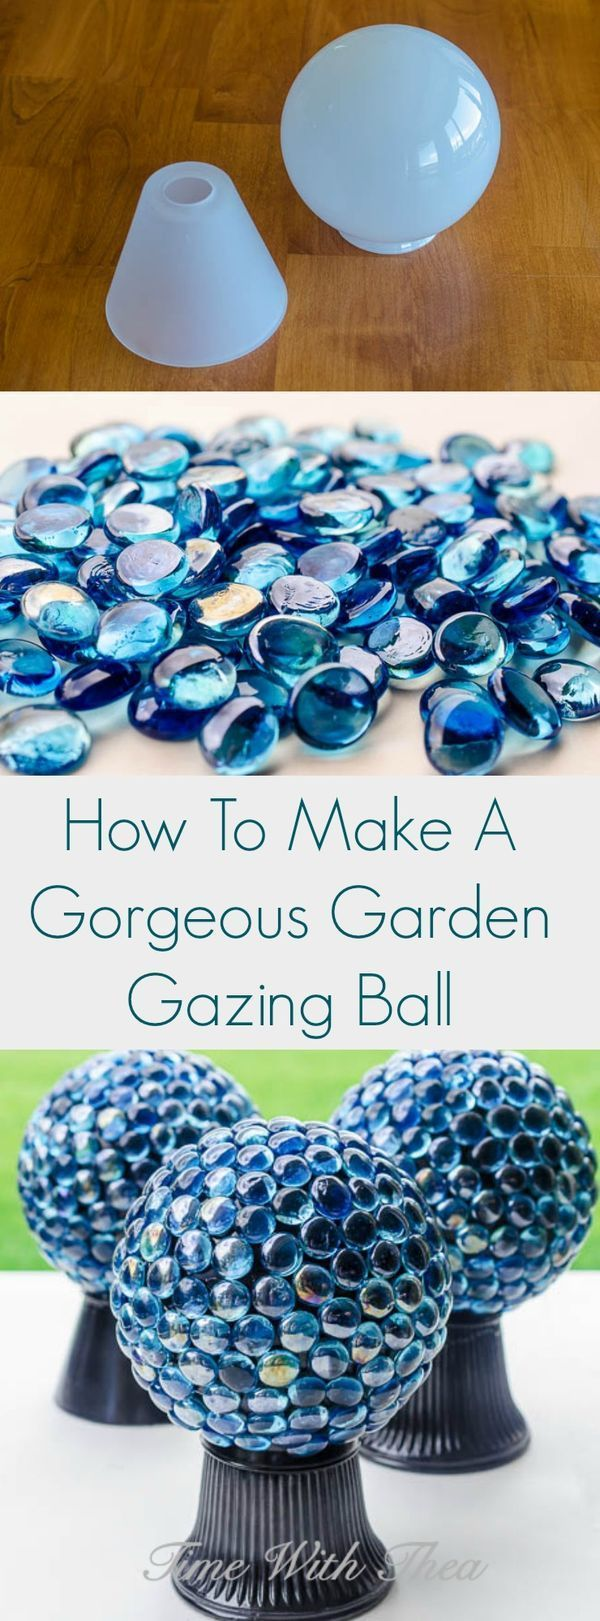 Make this gorgeous diy garden gazing ball to add to your garden decor using items purchased at the thrift store and dollar store! It is both an easy and inexpensive idea to make with these detailed tips and instructions.